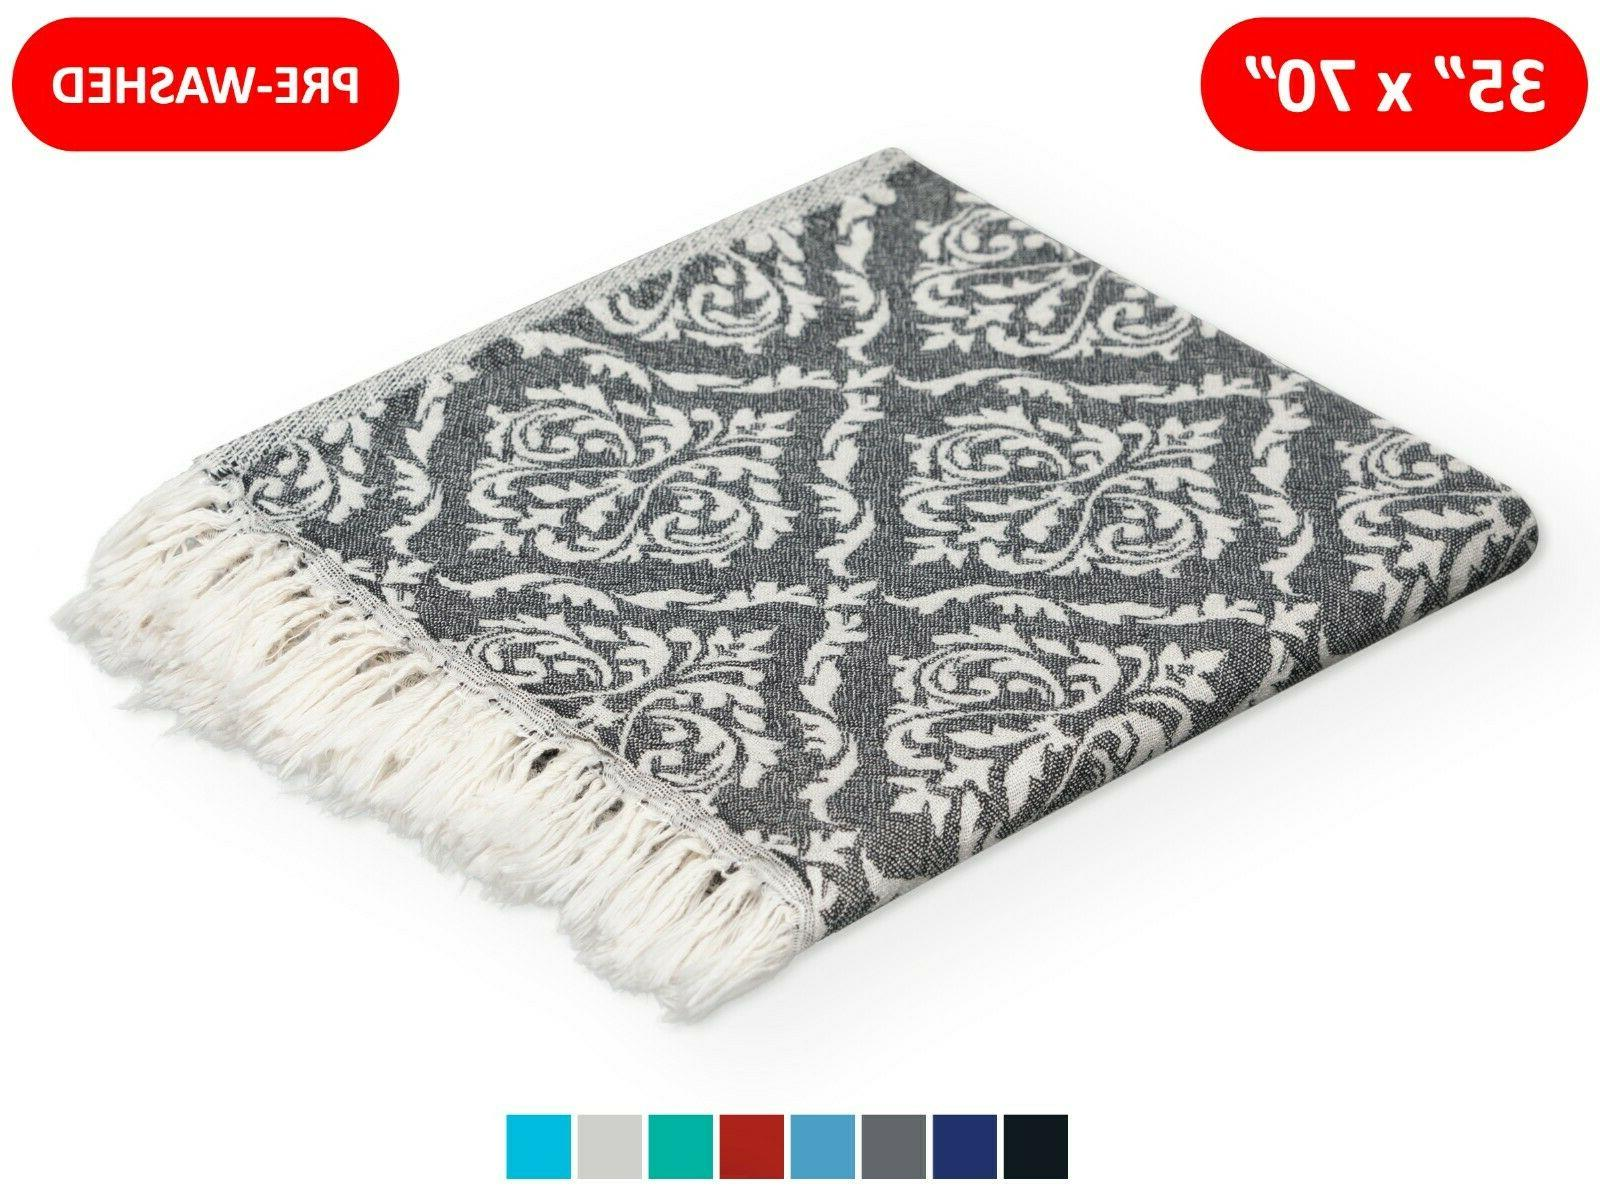 100% TURKISH COTTON MULTI-USE TOWEL 35x70 BEACH BATH BLANKET